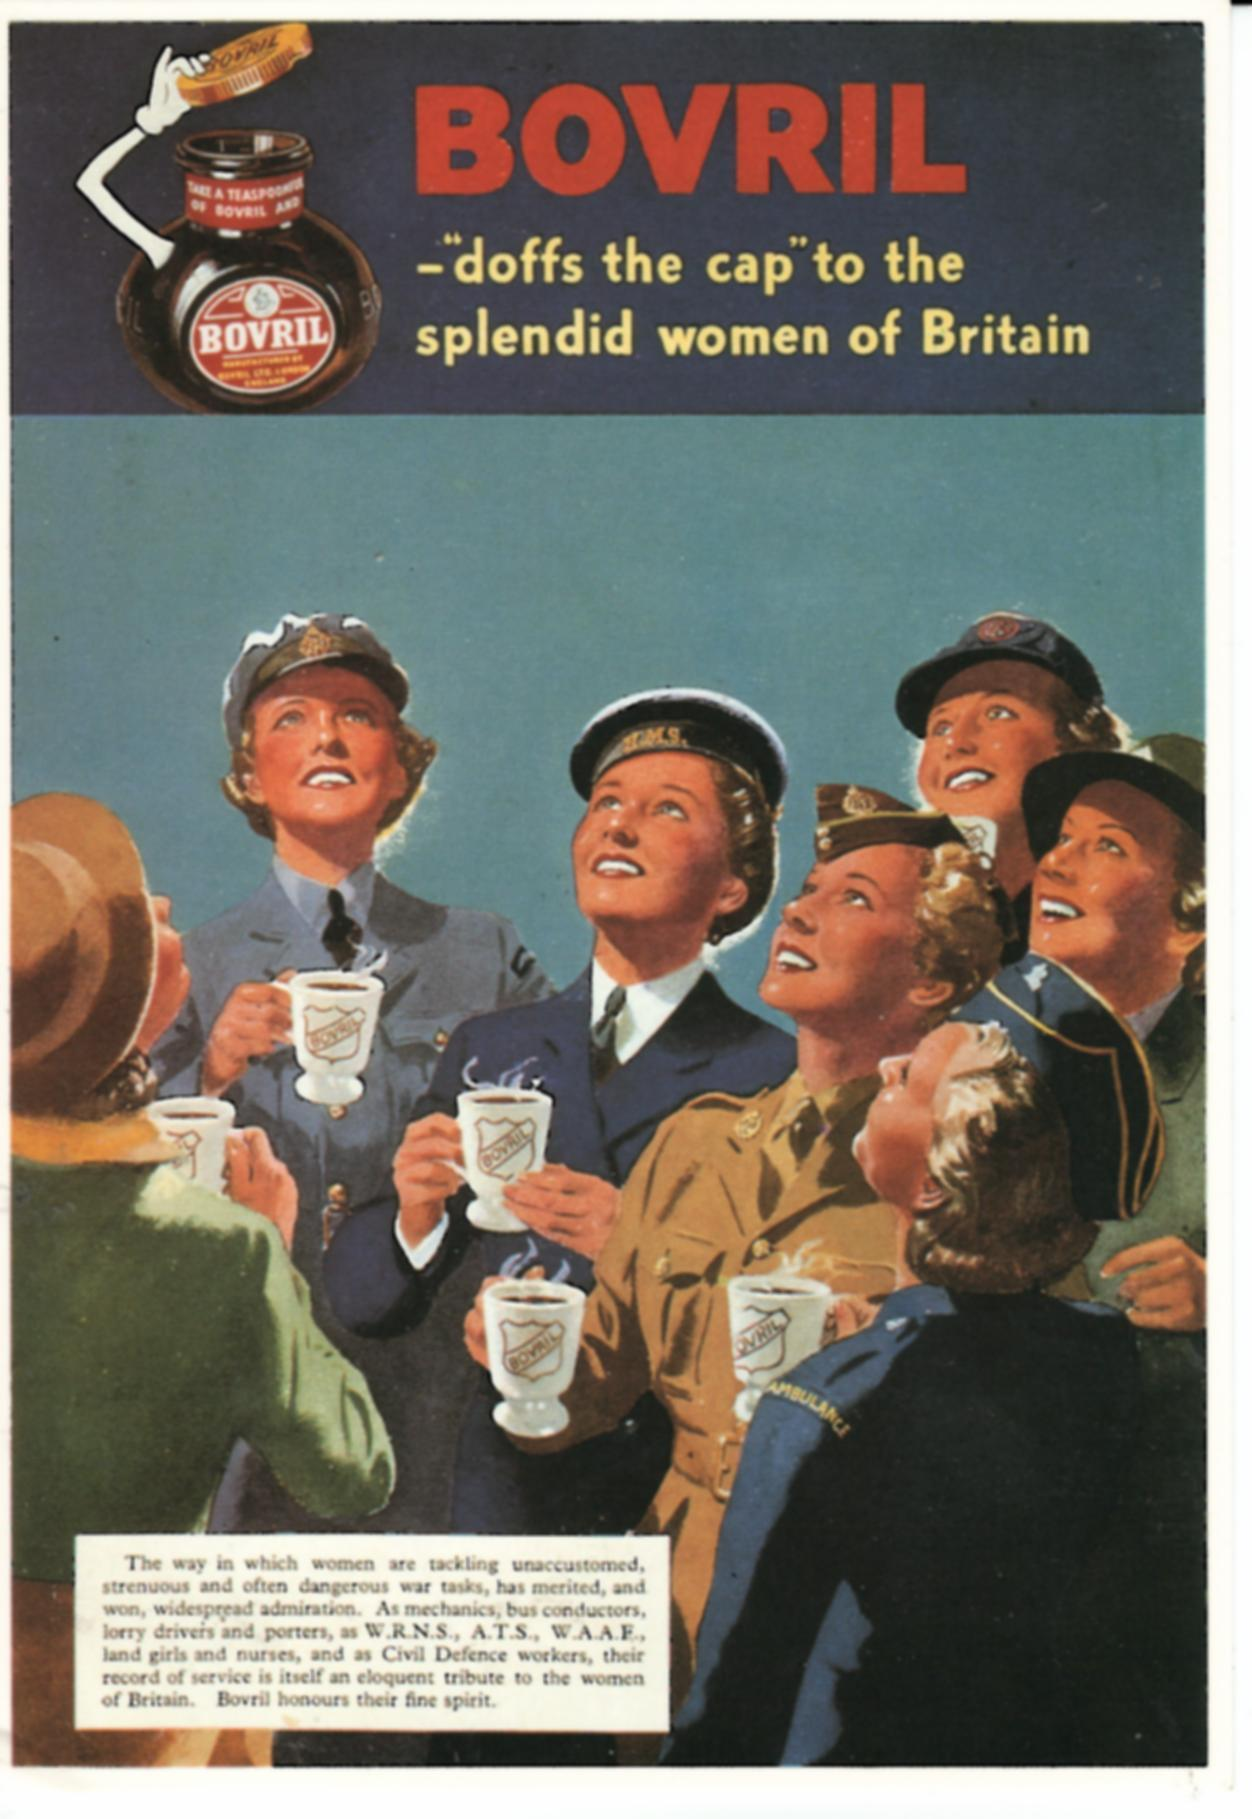 Bovril doffs the cap to the splendid women of Britain ww2